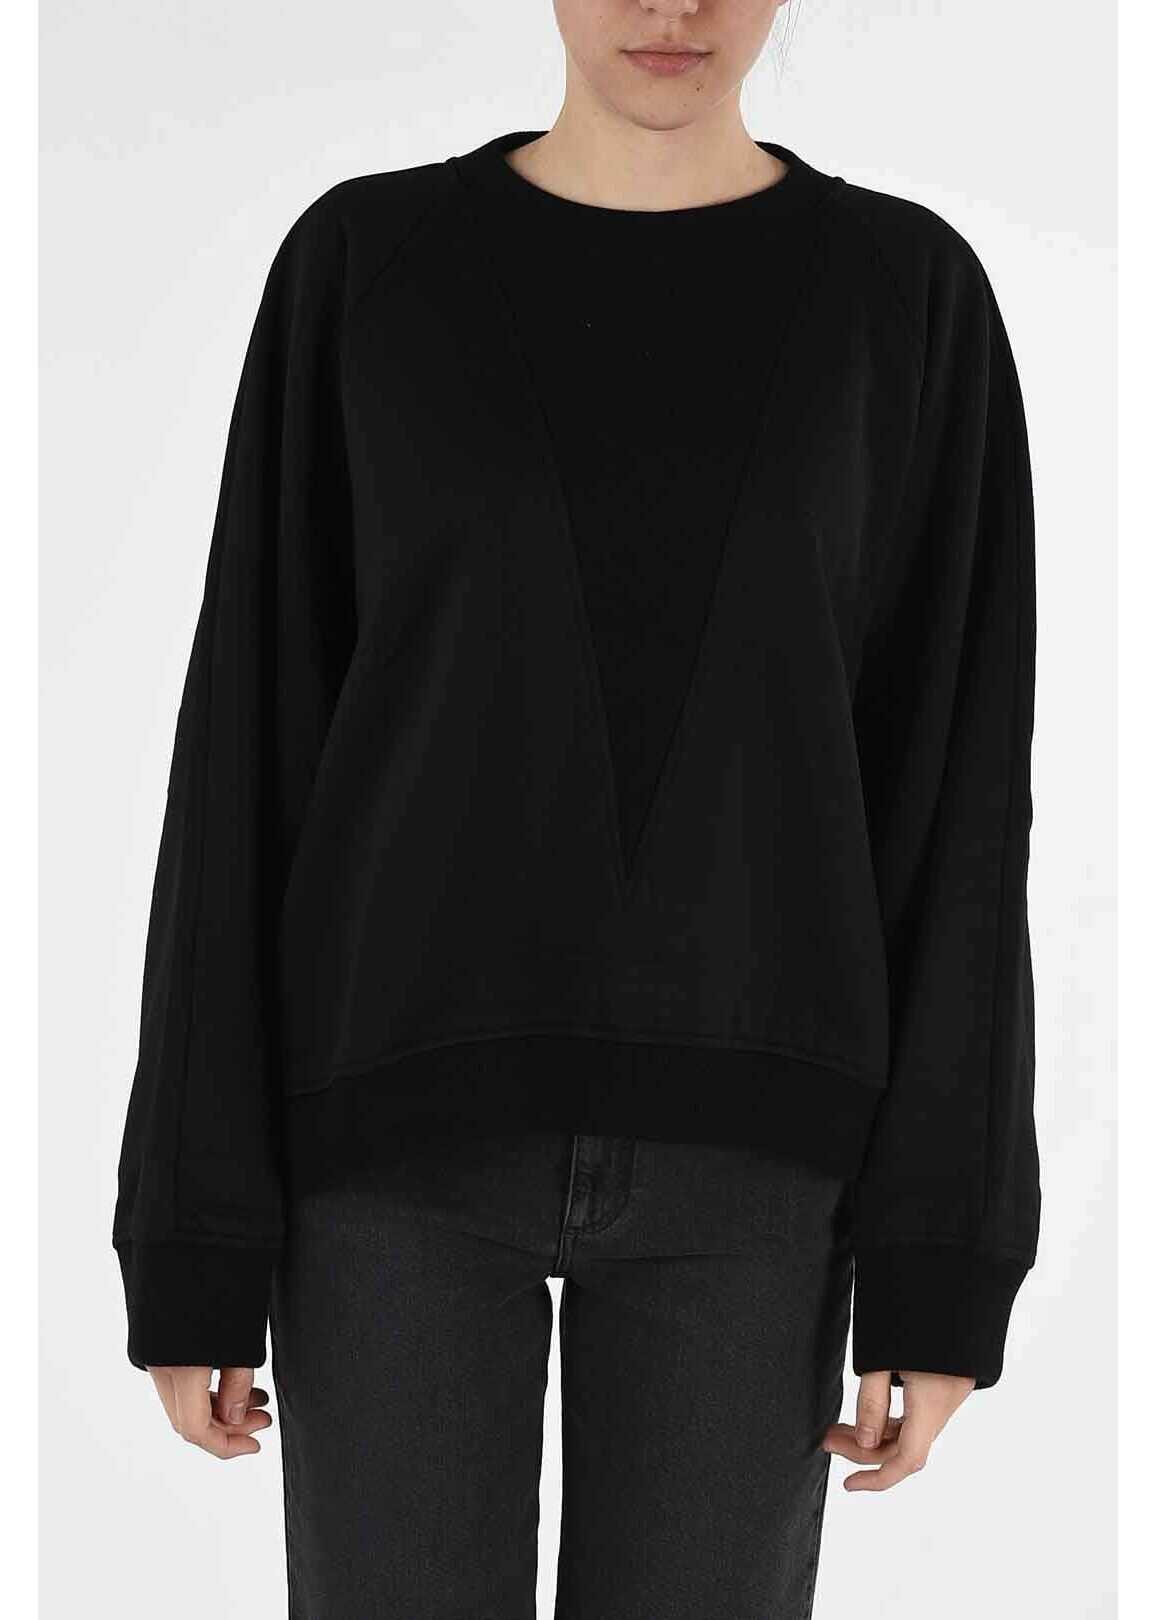 Givenchy crew-neck sweatshirt BLACK